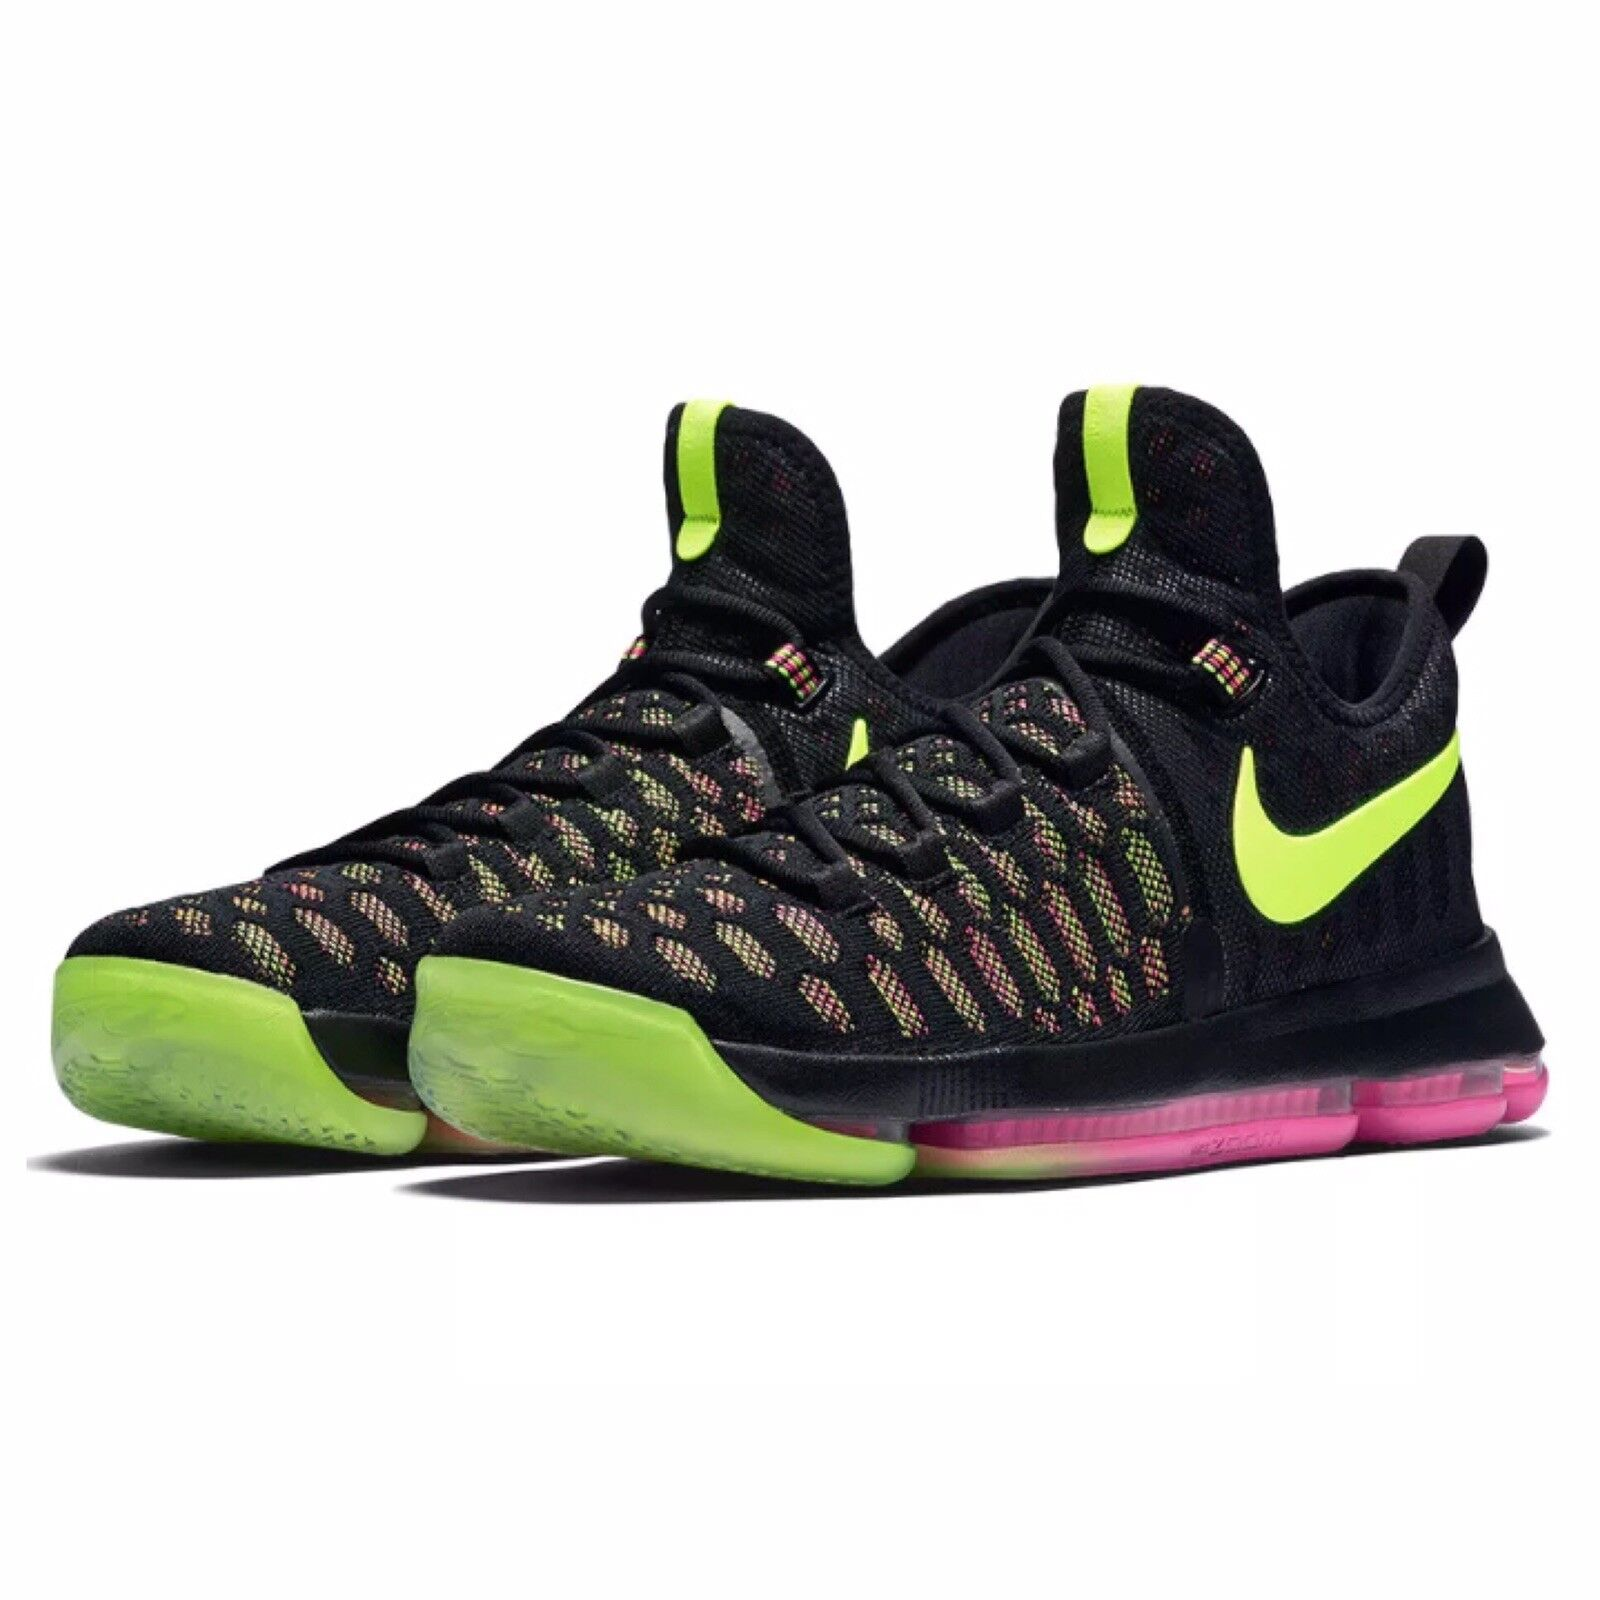 Nike Zoom KD9 Kevin Durant Shoes Size 10 Black & Multicolor 843392 999 BRAND NEW